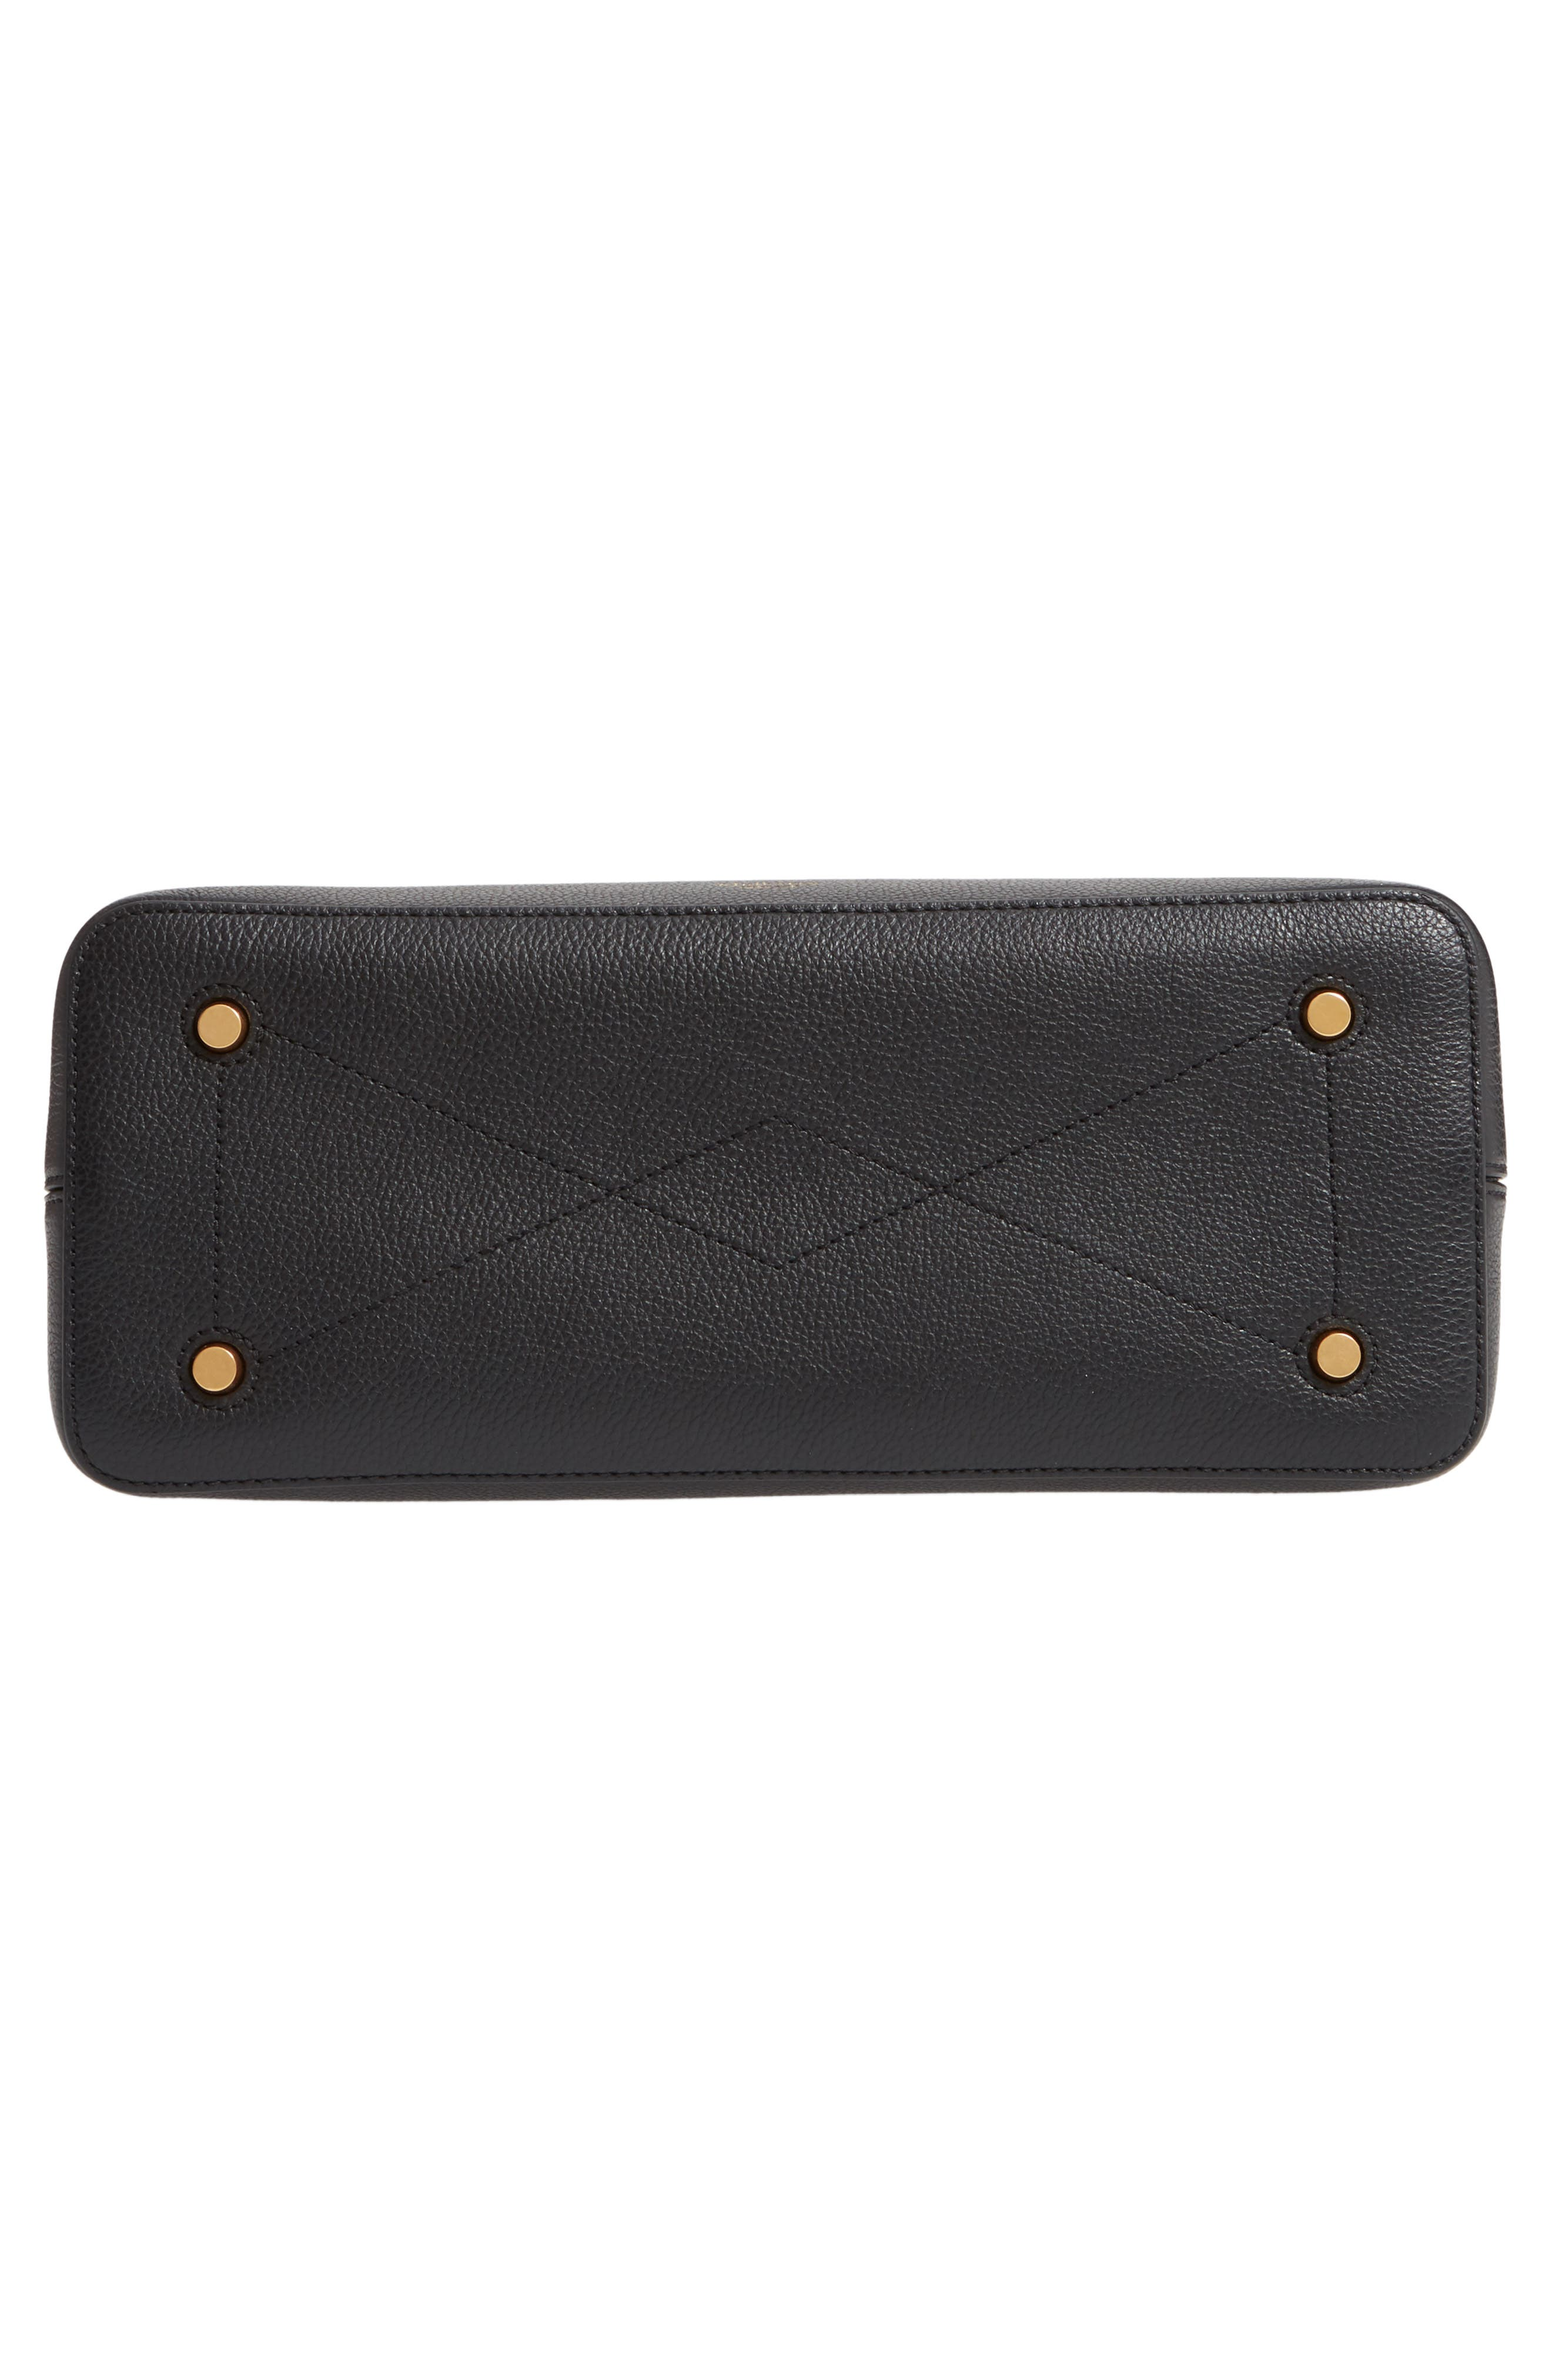 MULBERRY,                             Small Seaton Leather Top Handle Satchel,                             Alternate thumbnail 6, color,                             BLACK